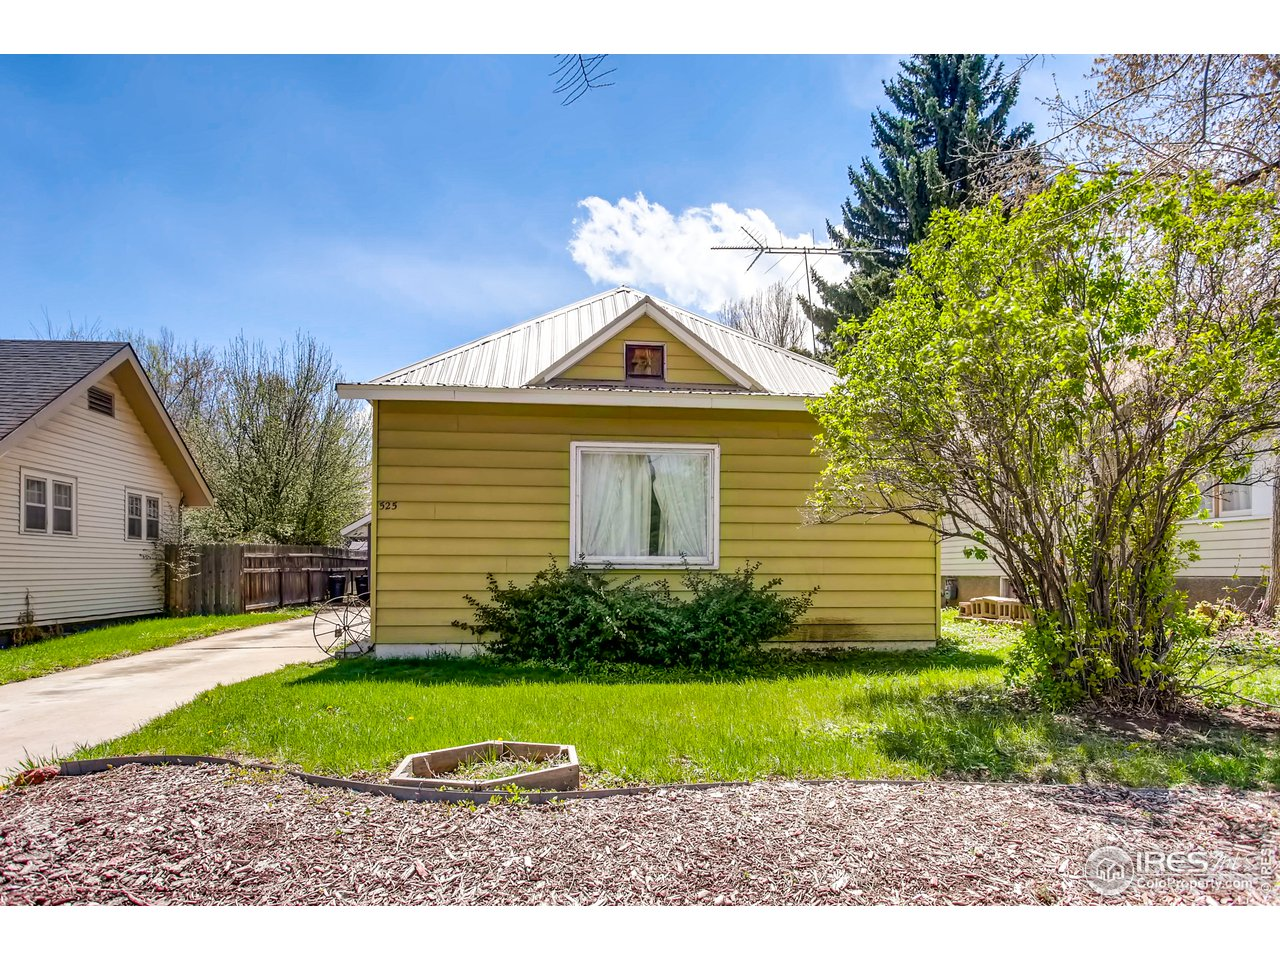 525 Laporte Ave, Fort Collins CO 80521